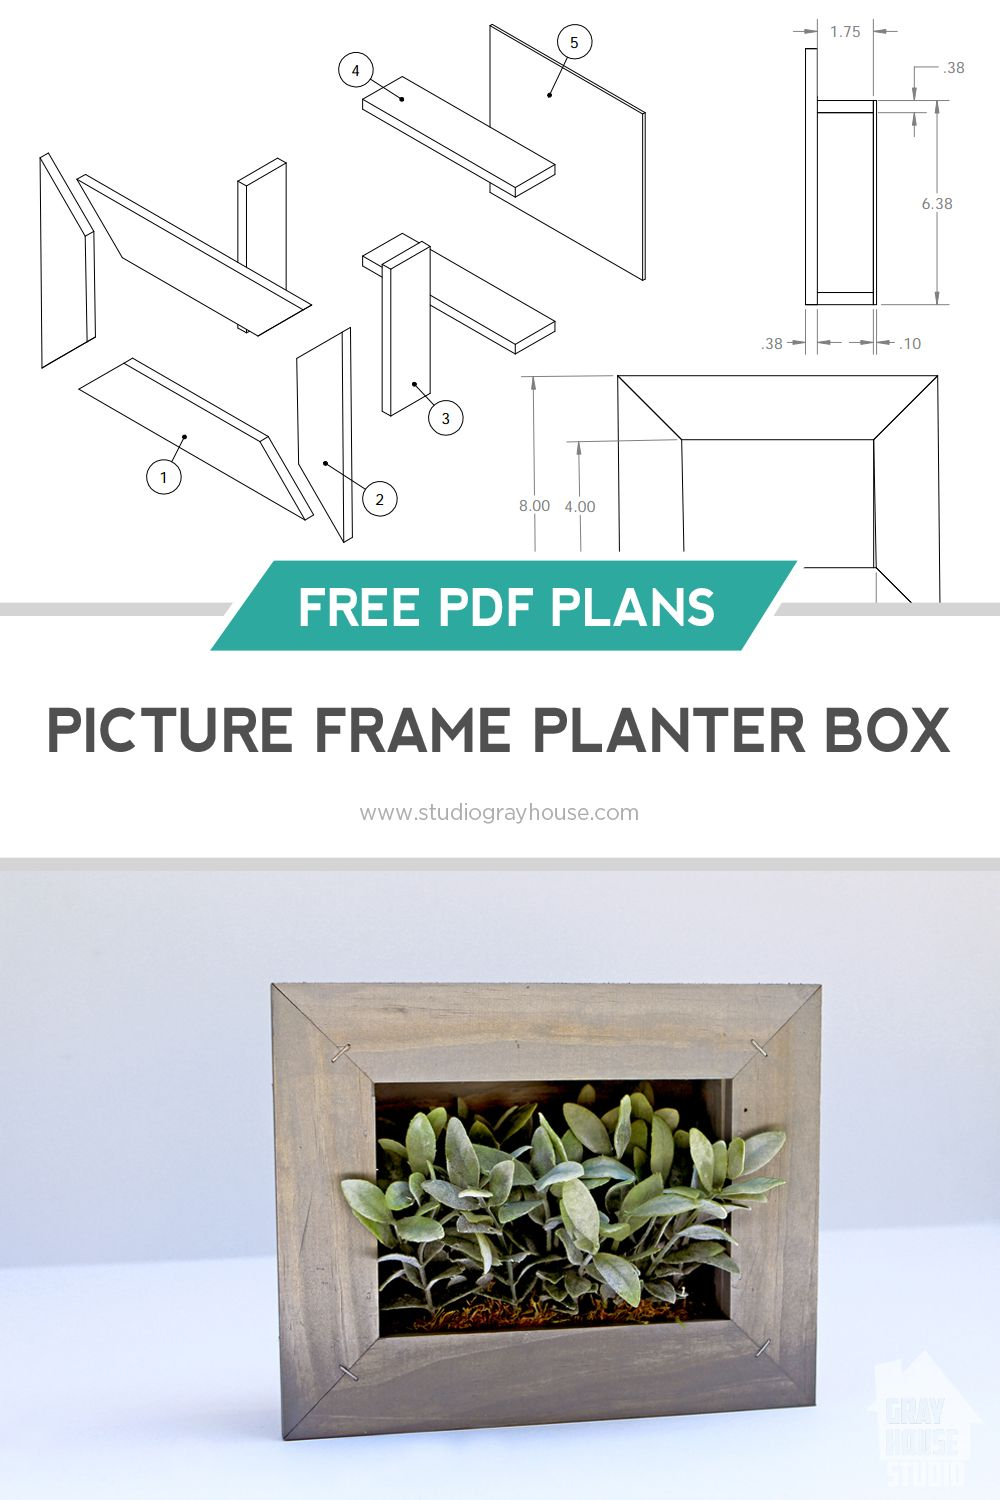 diy picture frame planter box with free plans  [ 1000 x 1500 Pixel ]